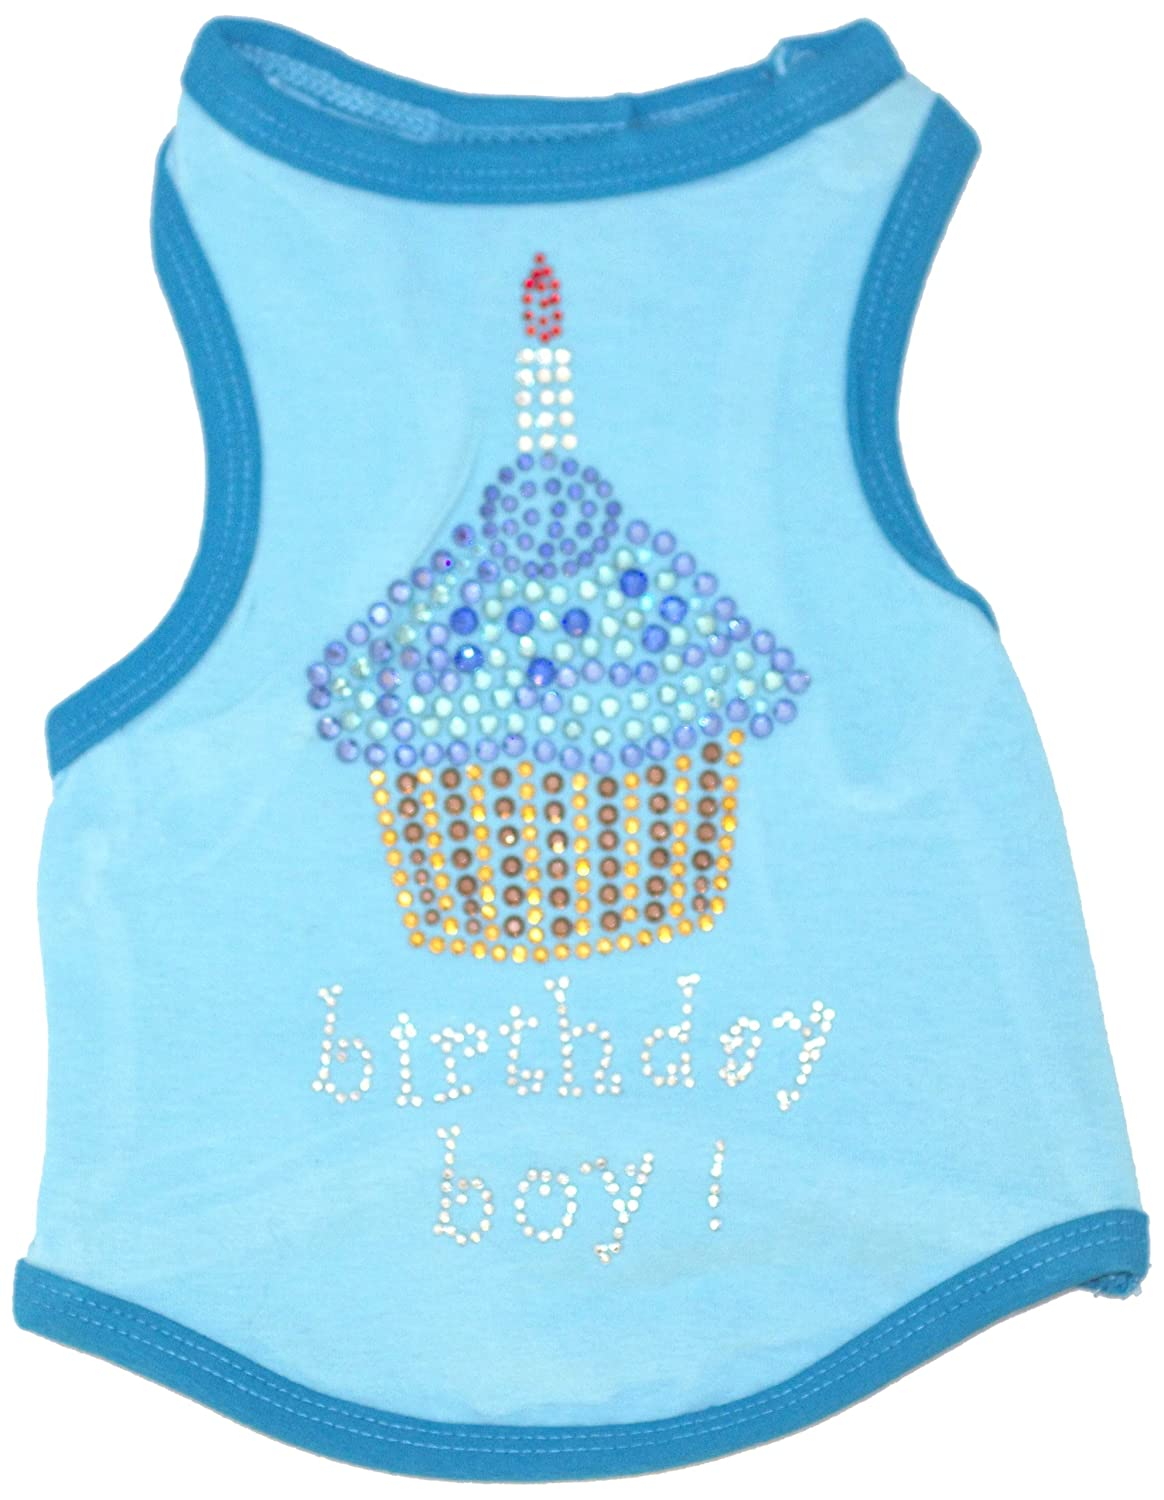 The Dog Squad Birthday Cupcake Pet Apparel, Medium, bluee